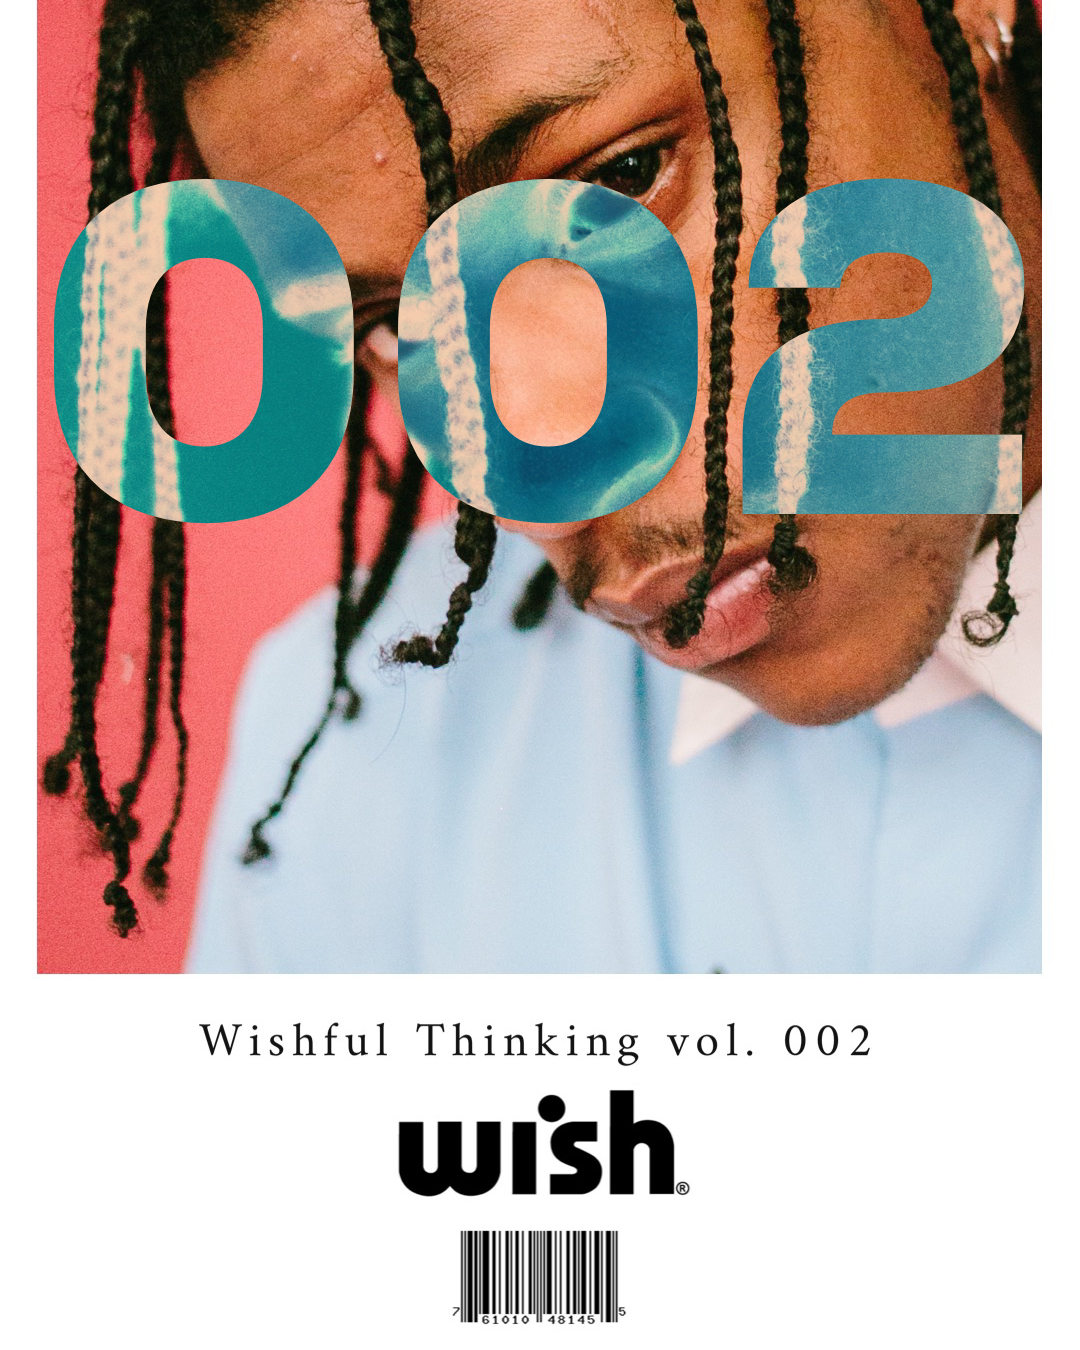 Wishful Thinking – Vol. 002